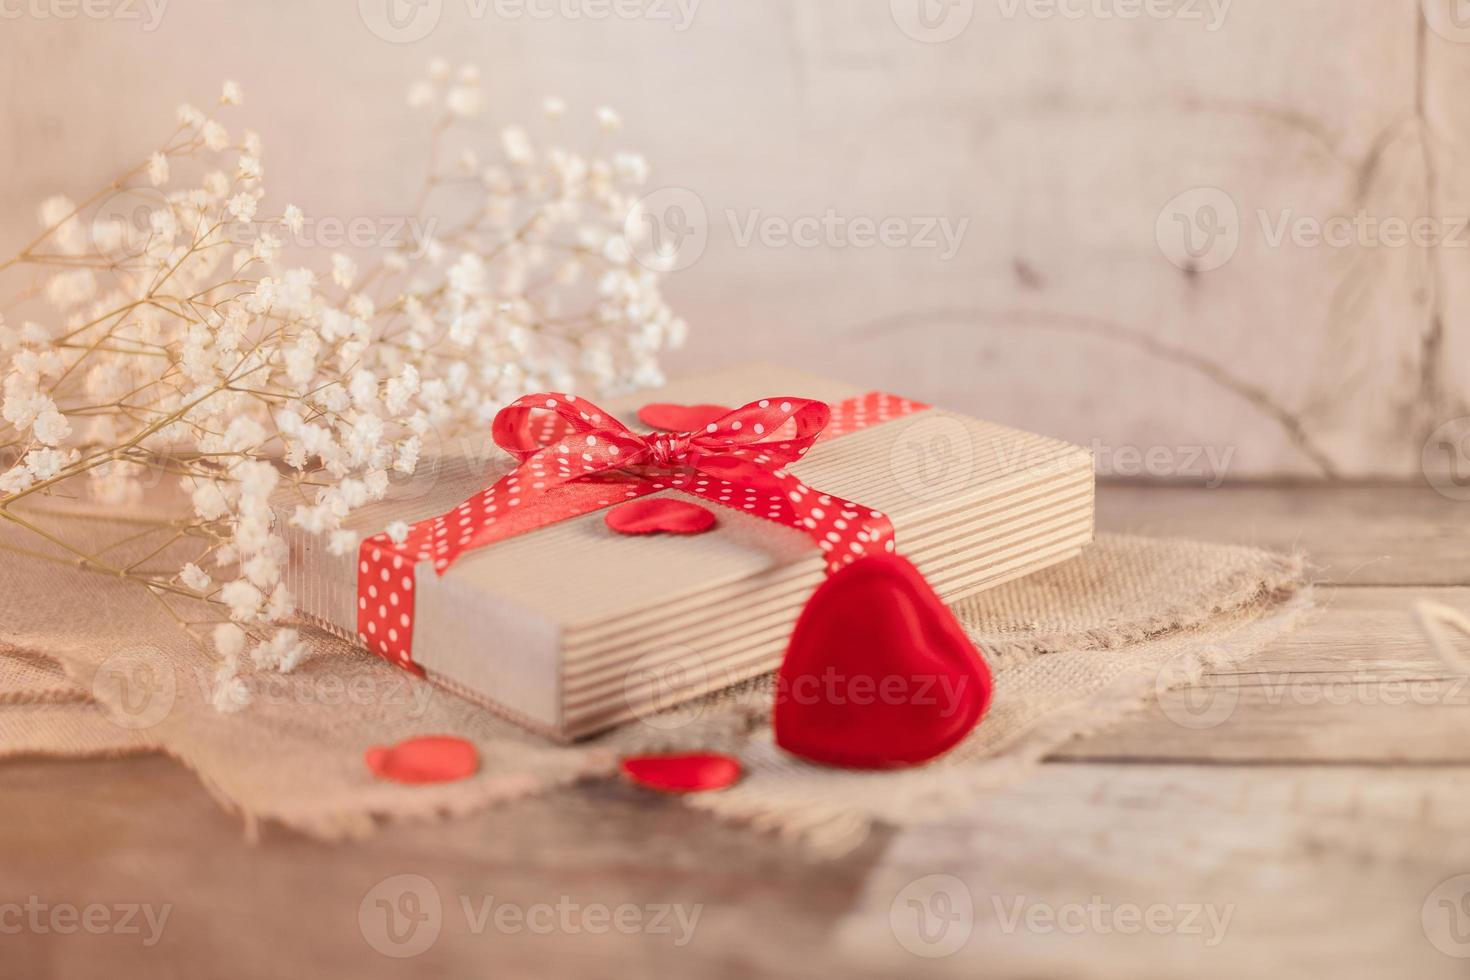 Valentine's gift and hearts decorations on wood photo